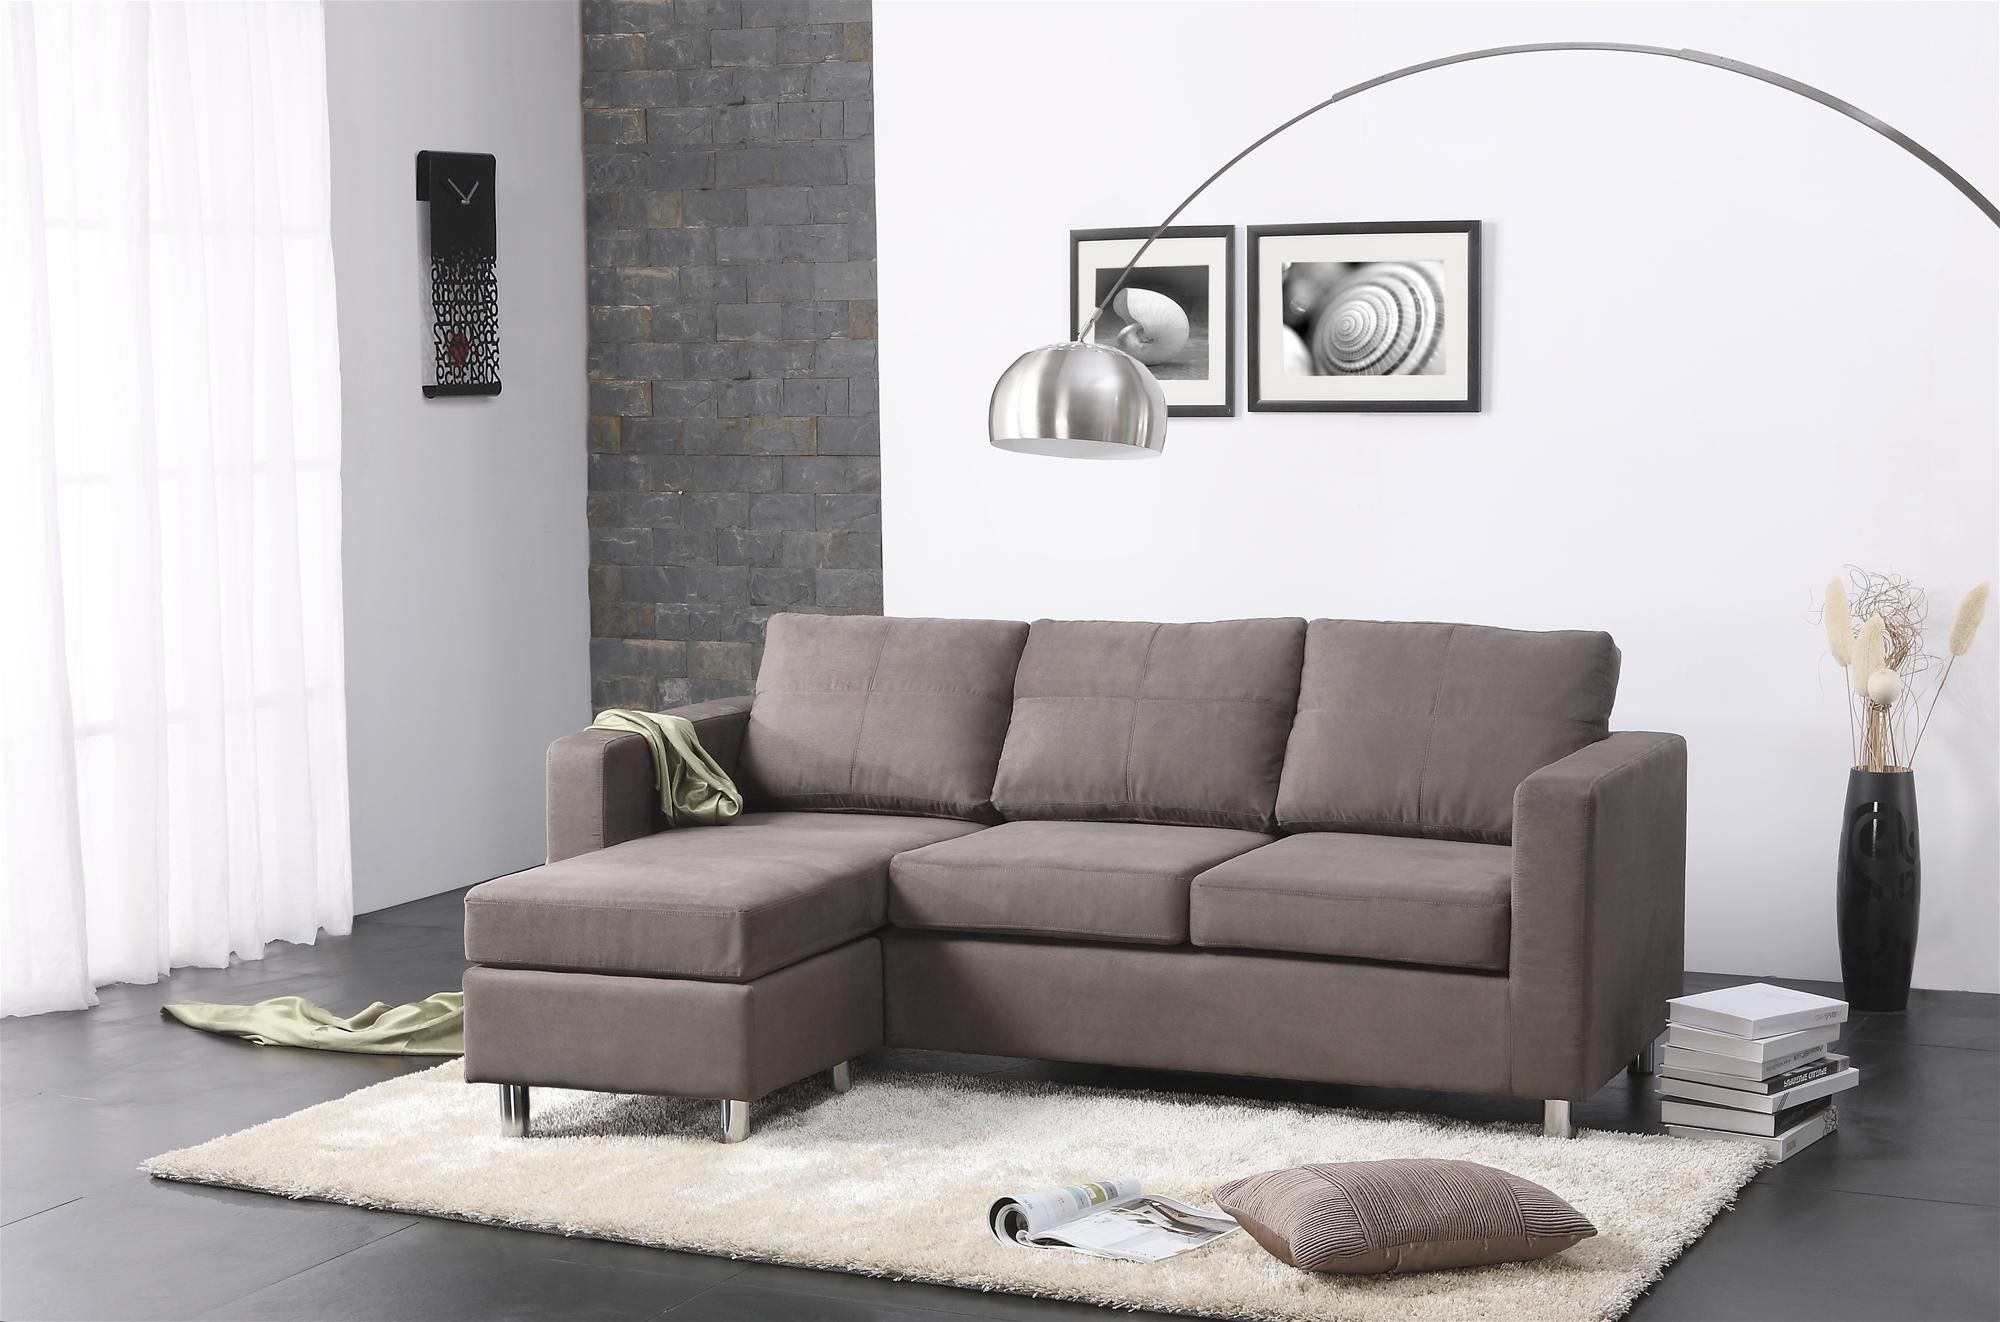 Couches For Small Living Rooms Small Living Room With Sectional